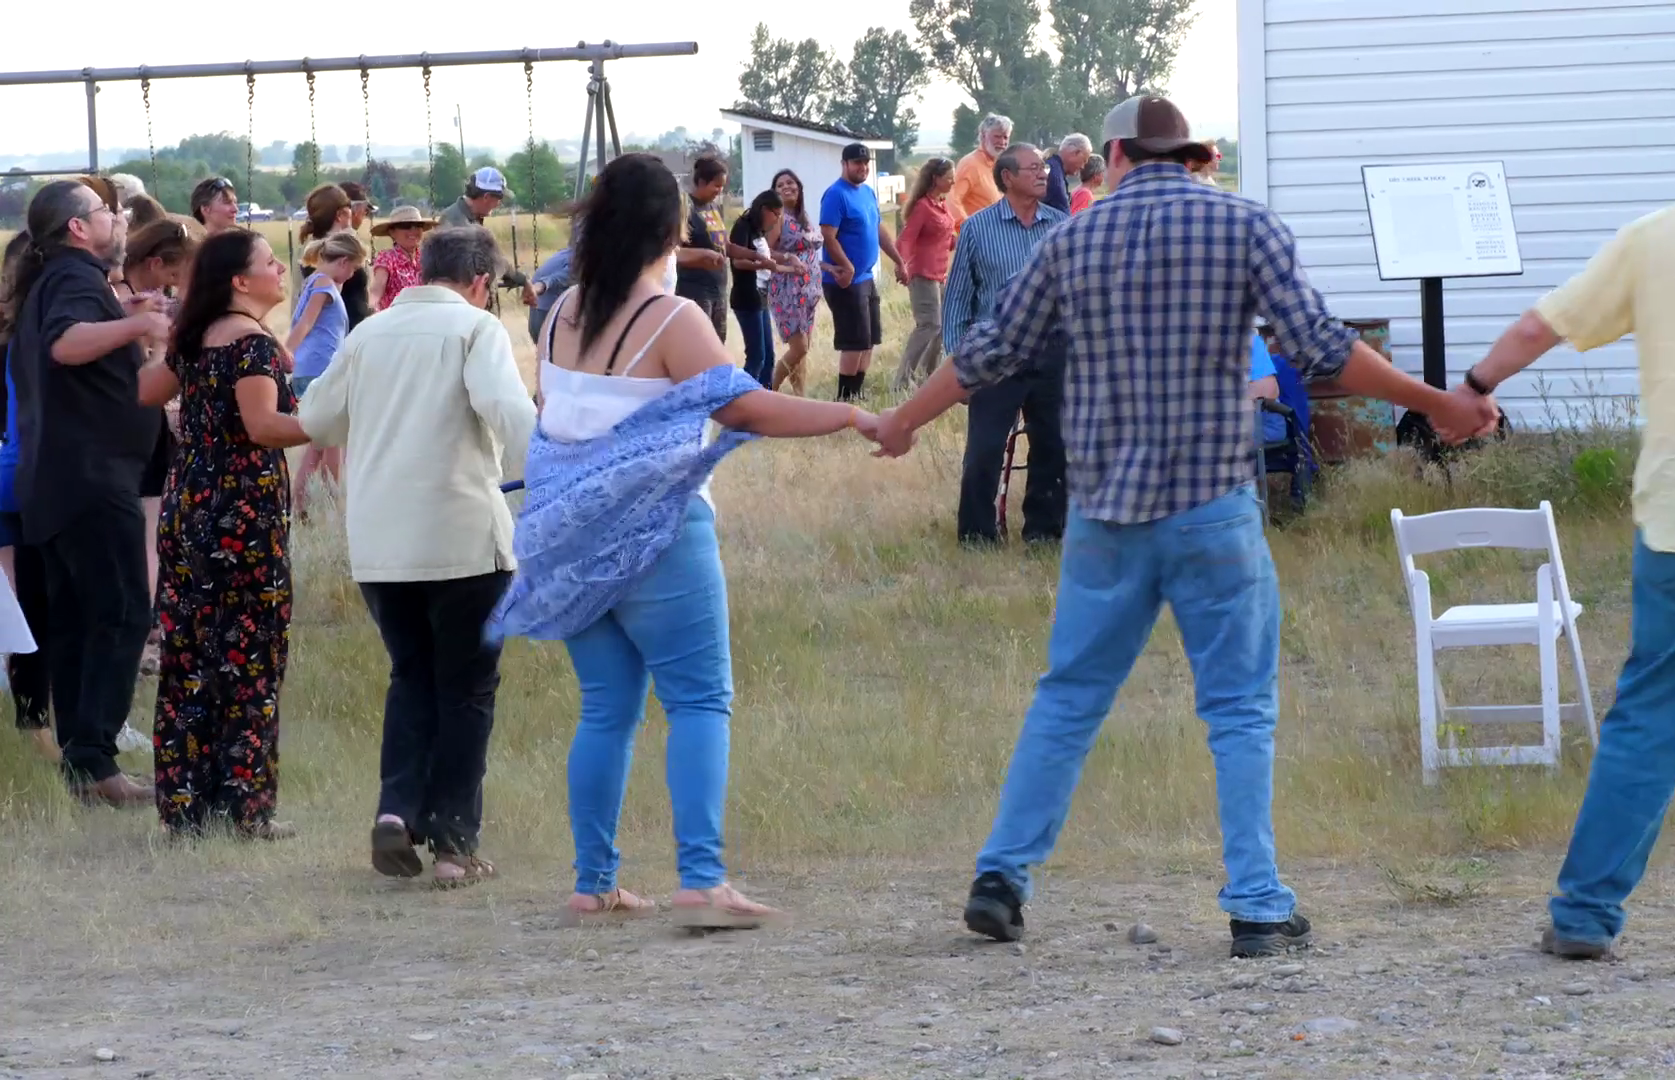 Guests joined hands and did a Native American circle dance during the opening of the installation.